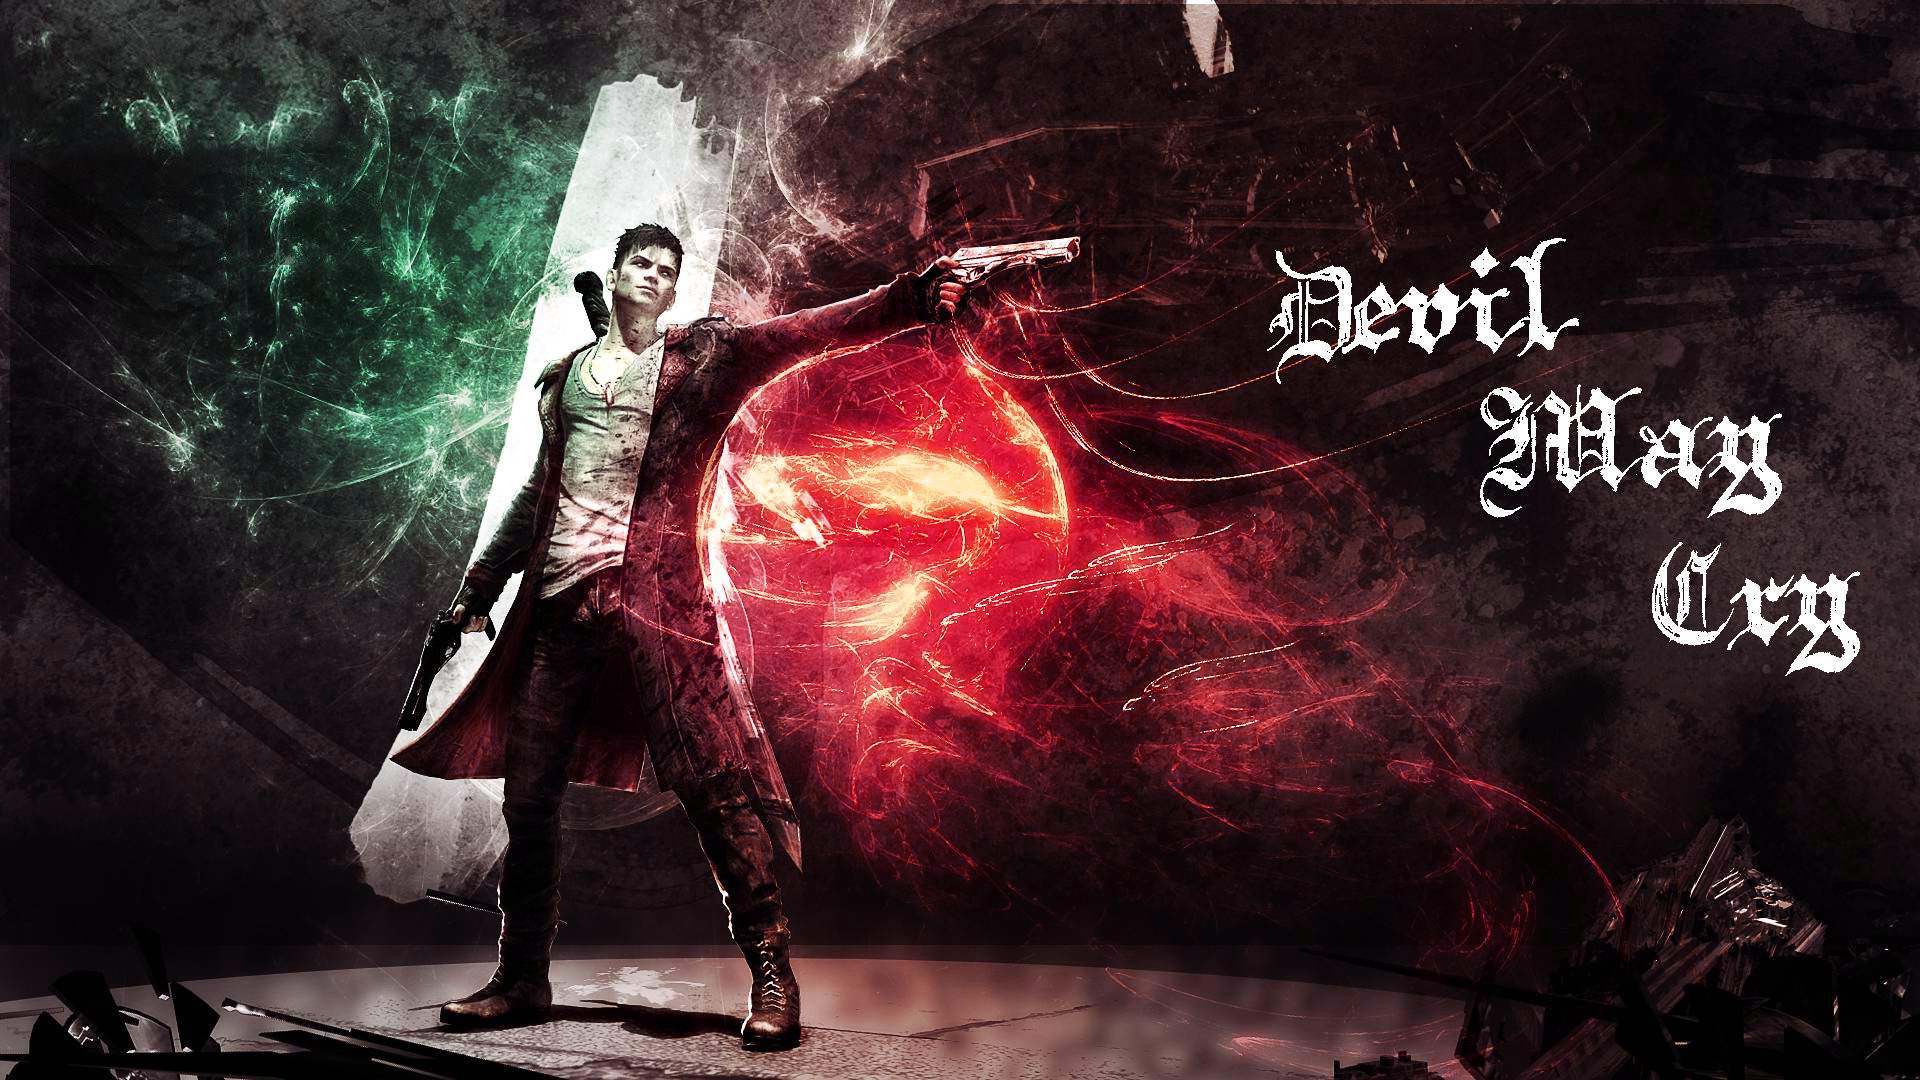 Devil may cry backgrounds wallpapertag - Devil may cry hd pics ...